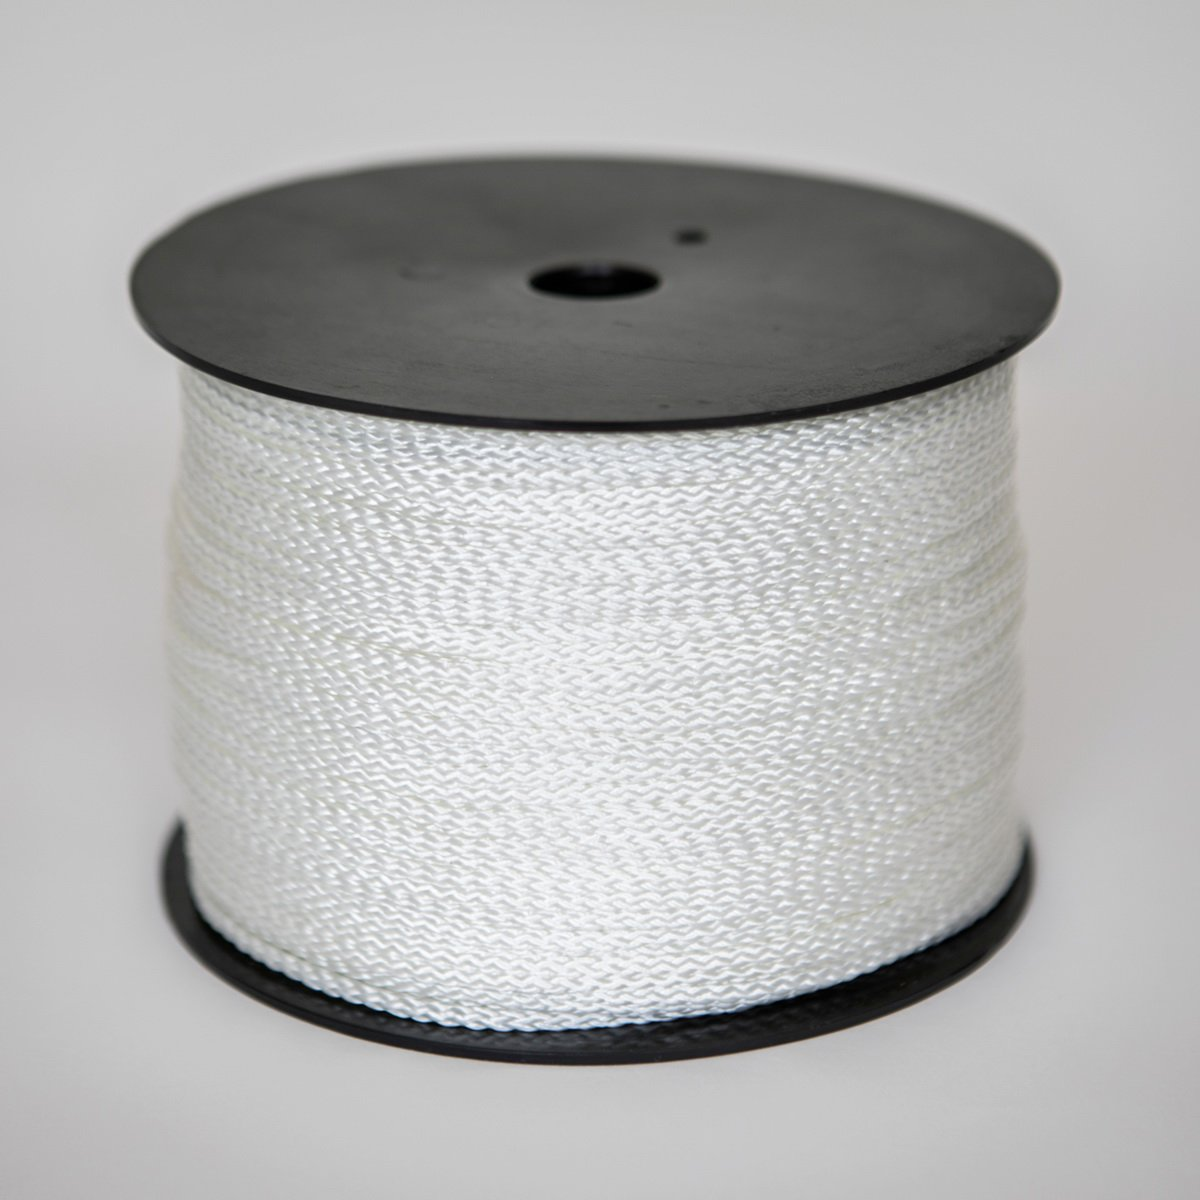 1/8 inch x 1000 Feet Premium Low Stretch Polyester Cord (#4) | Synthetic Rope | Commercial Grade Industrial Braided Rope